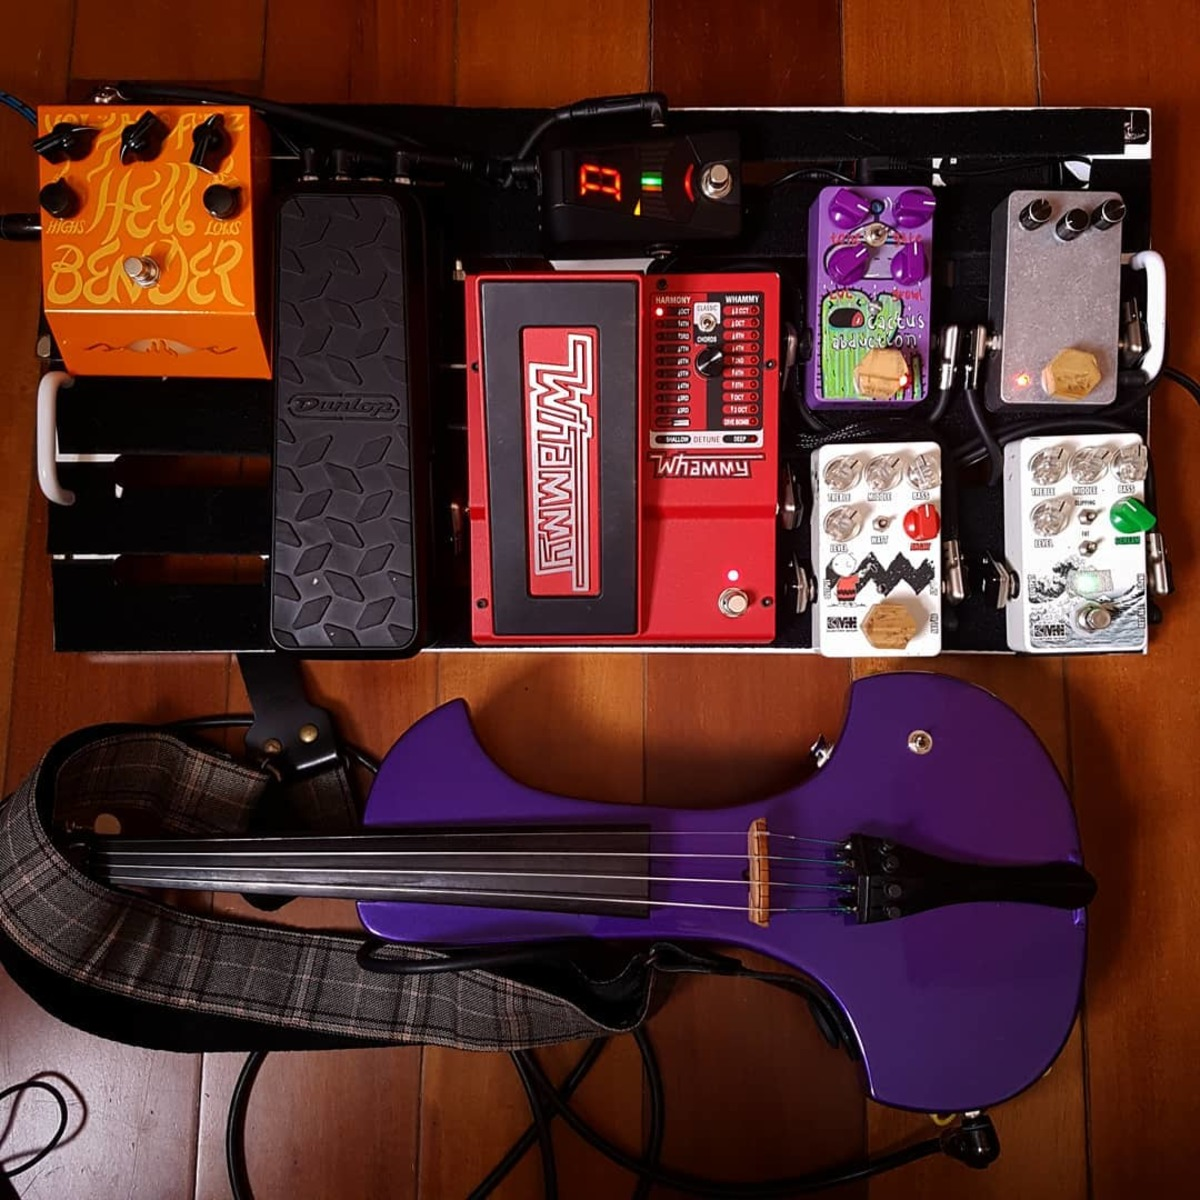 Photo of Dunlop DVP3 Volume (X) Pedal and more gear in a signal chain